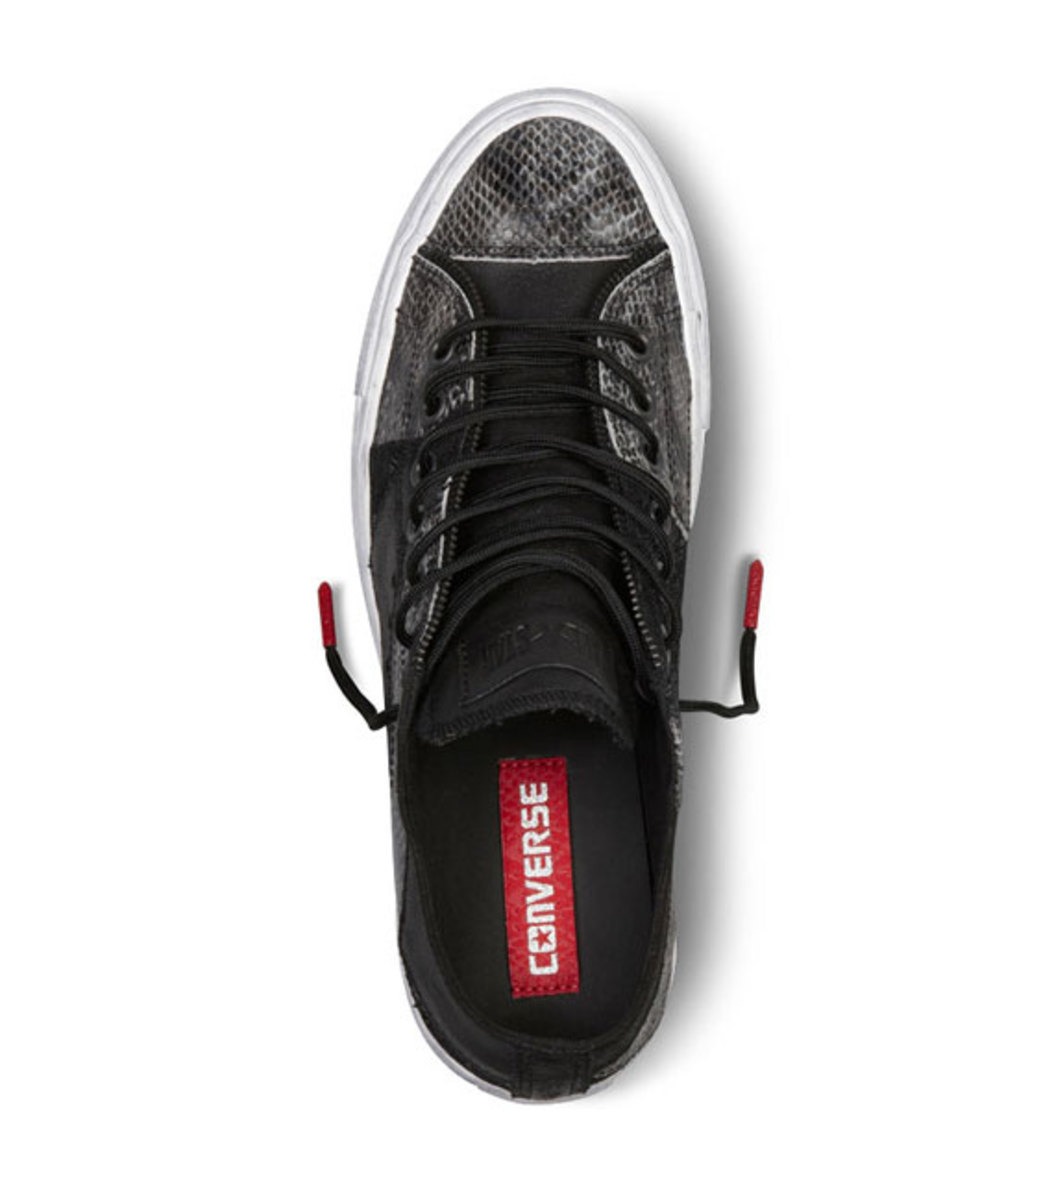 converse-chuck-taylor-all-star-year-of-the-snake-pack-15